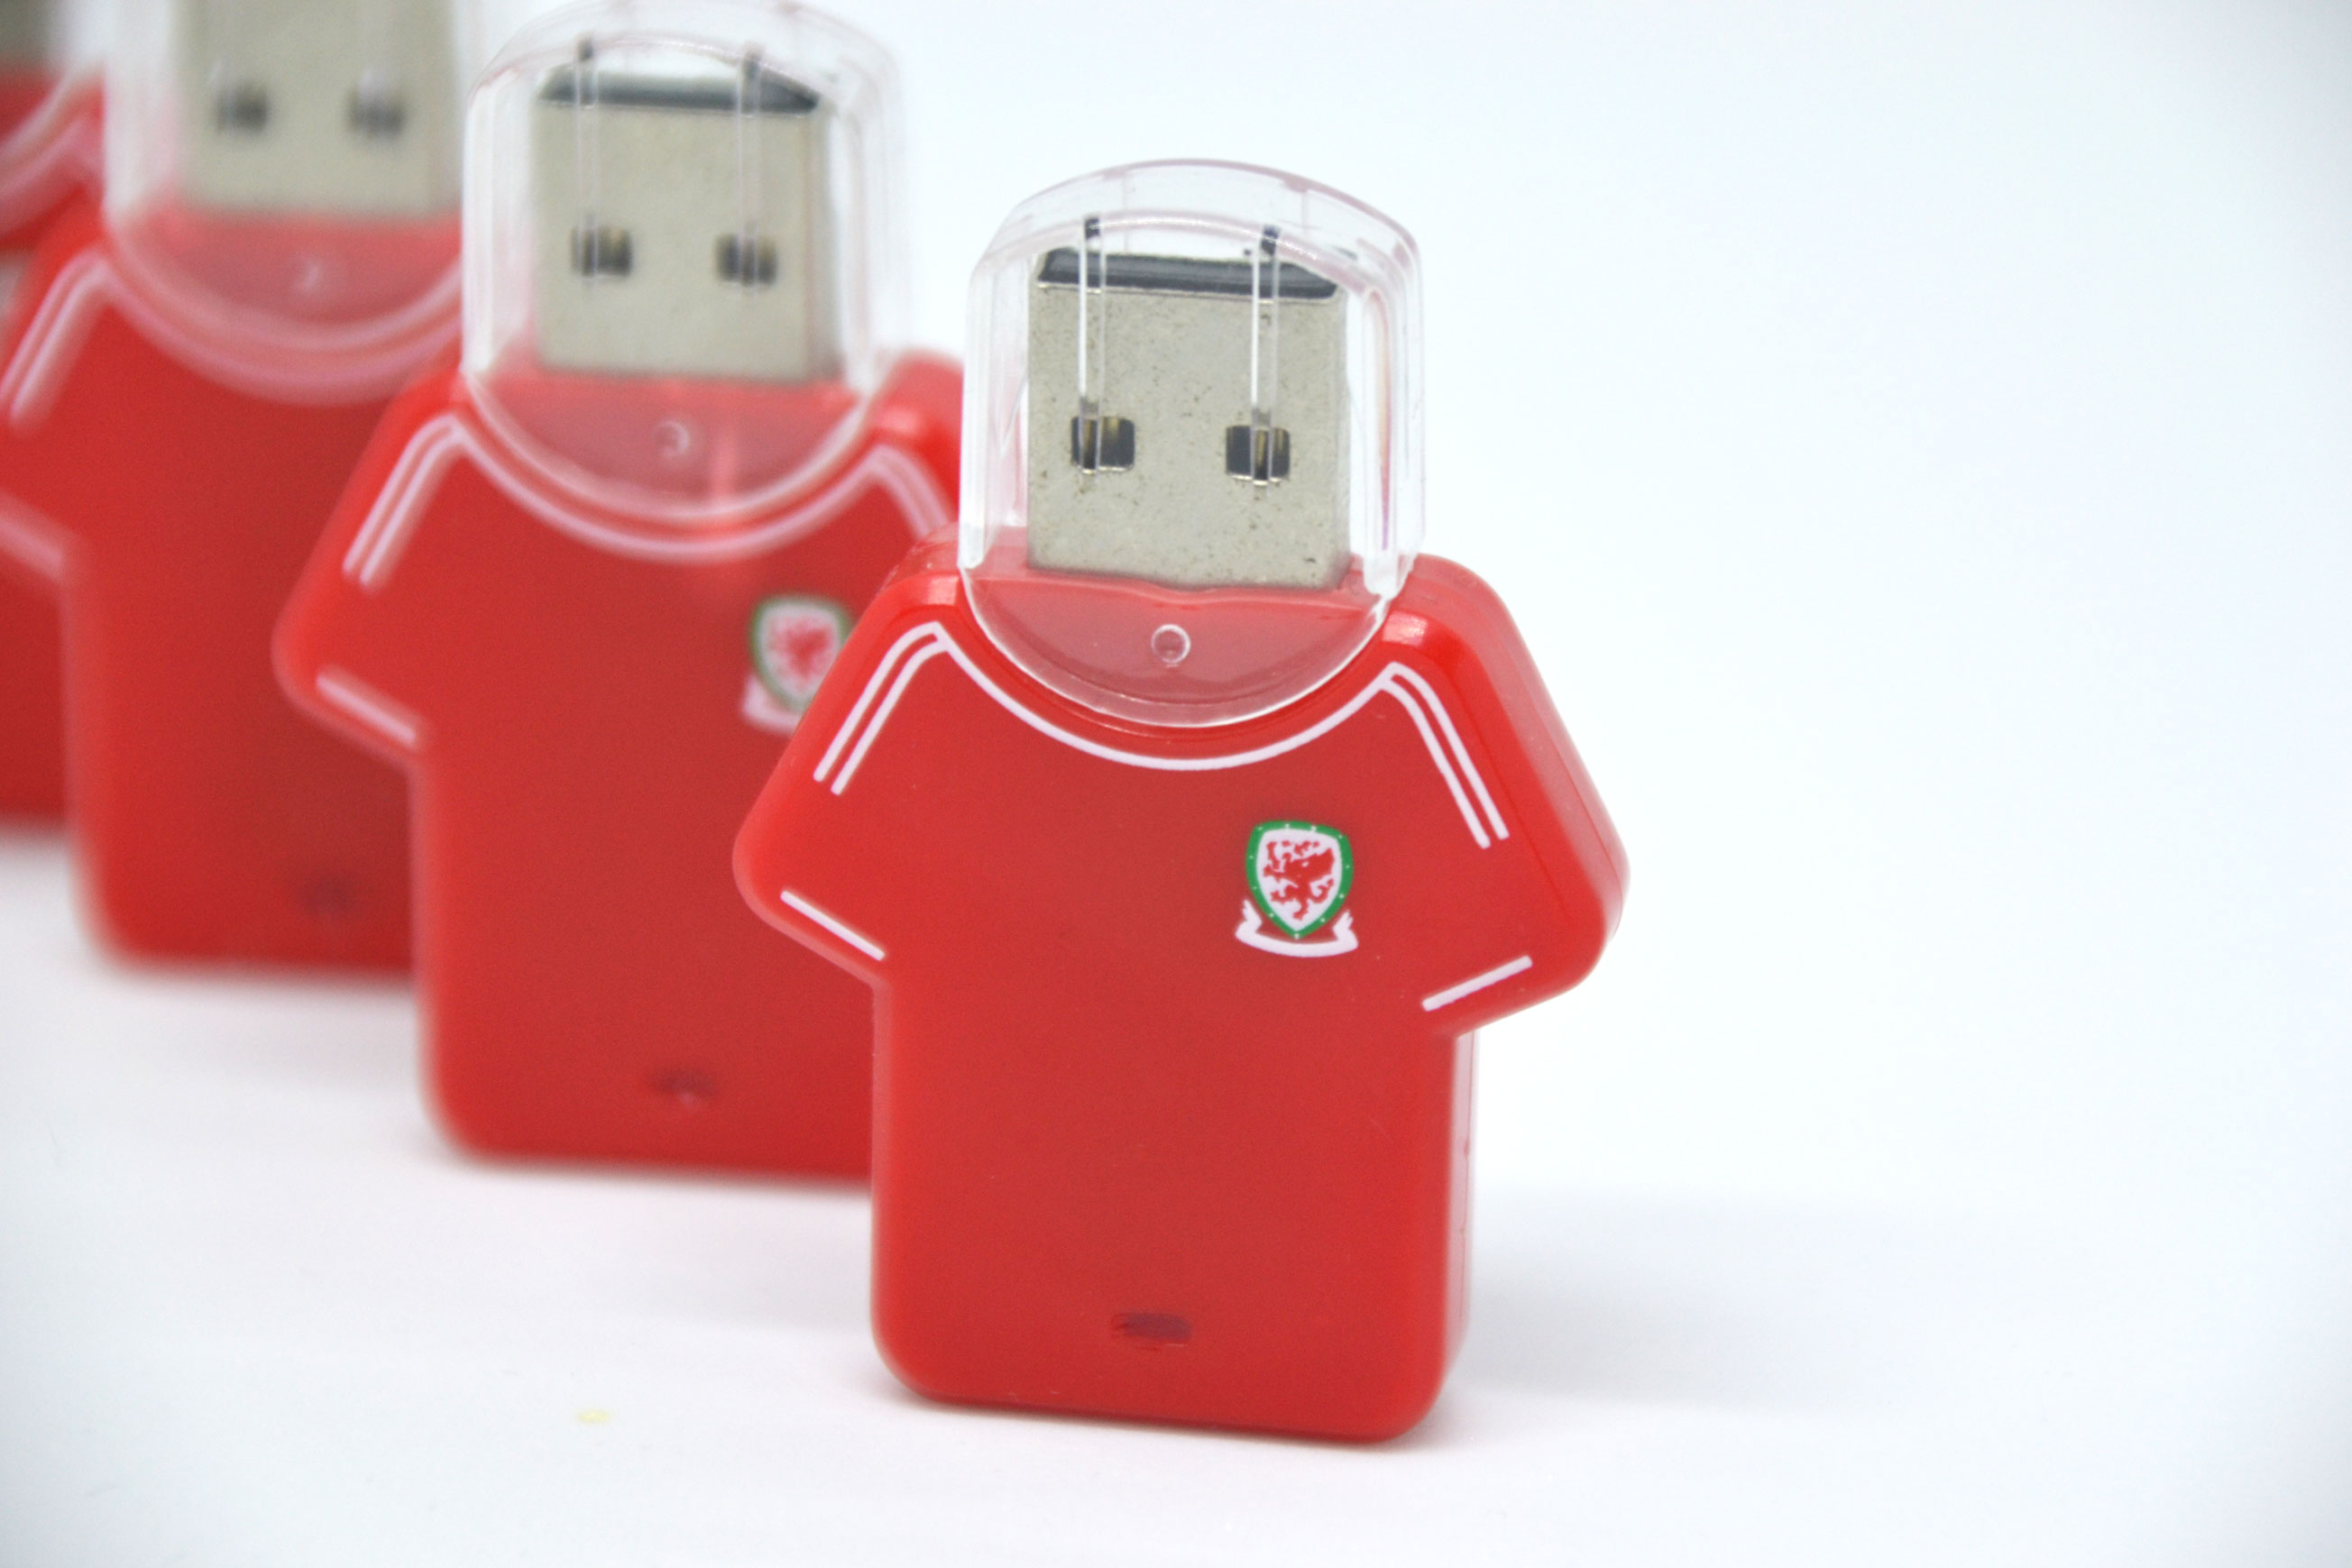 FAW Shirt USB Drives